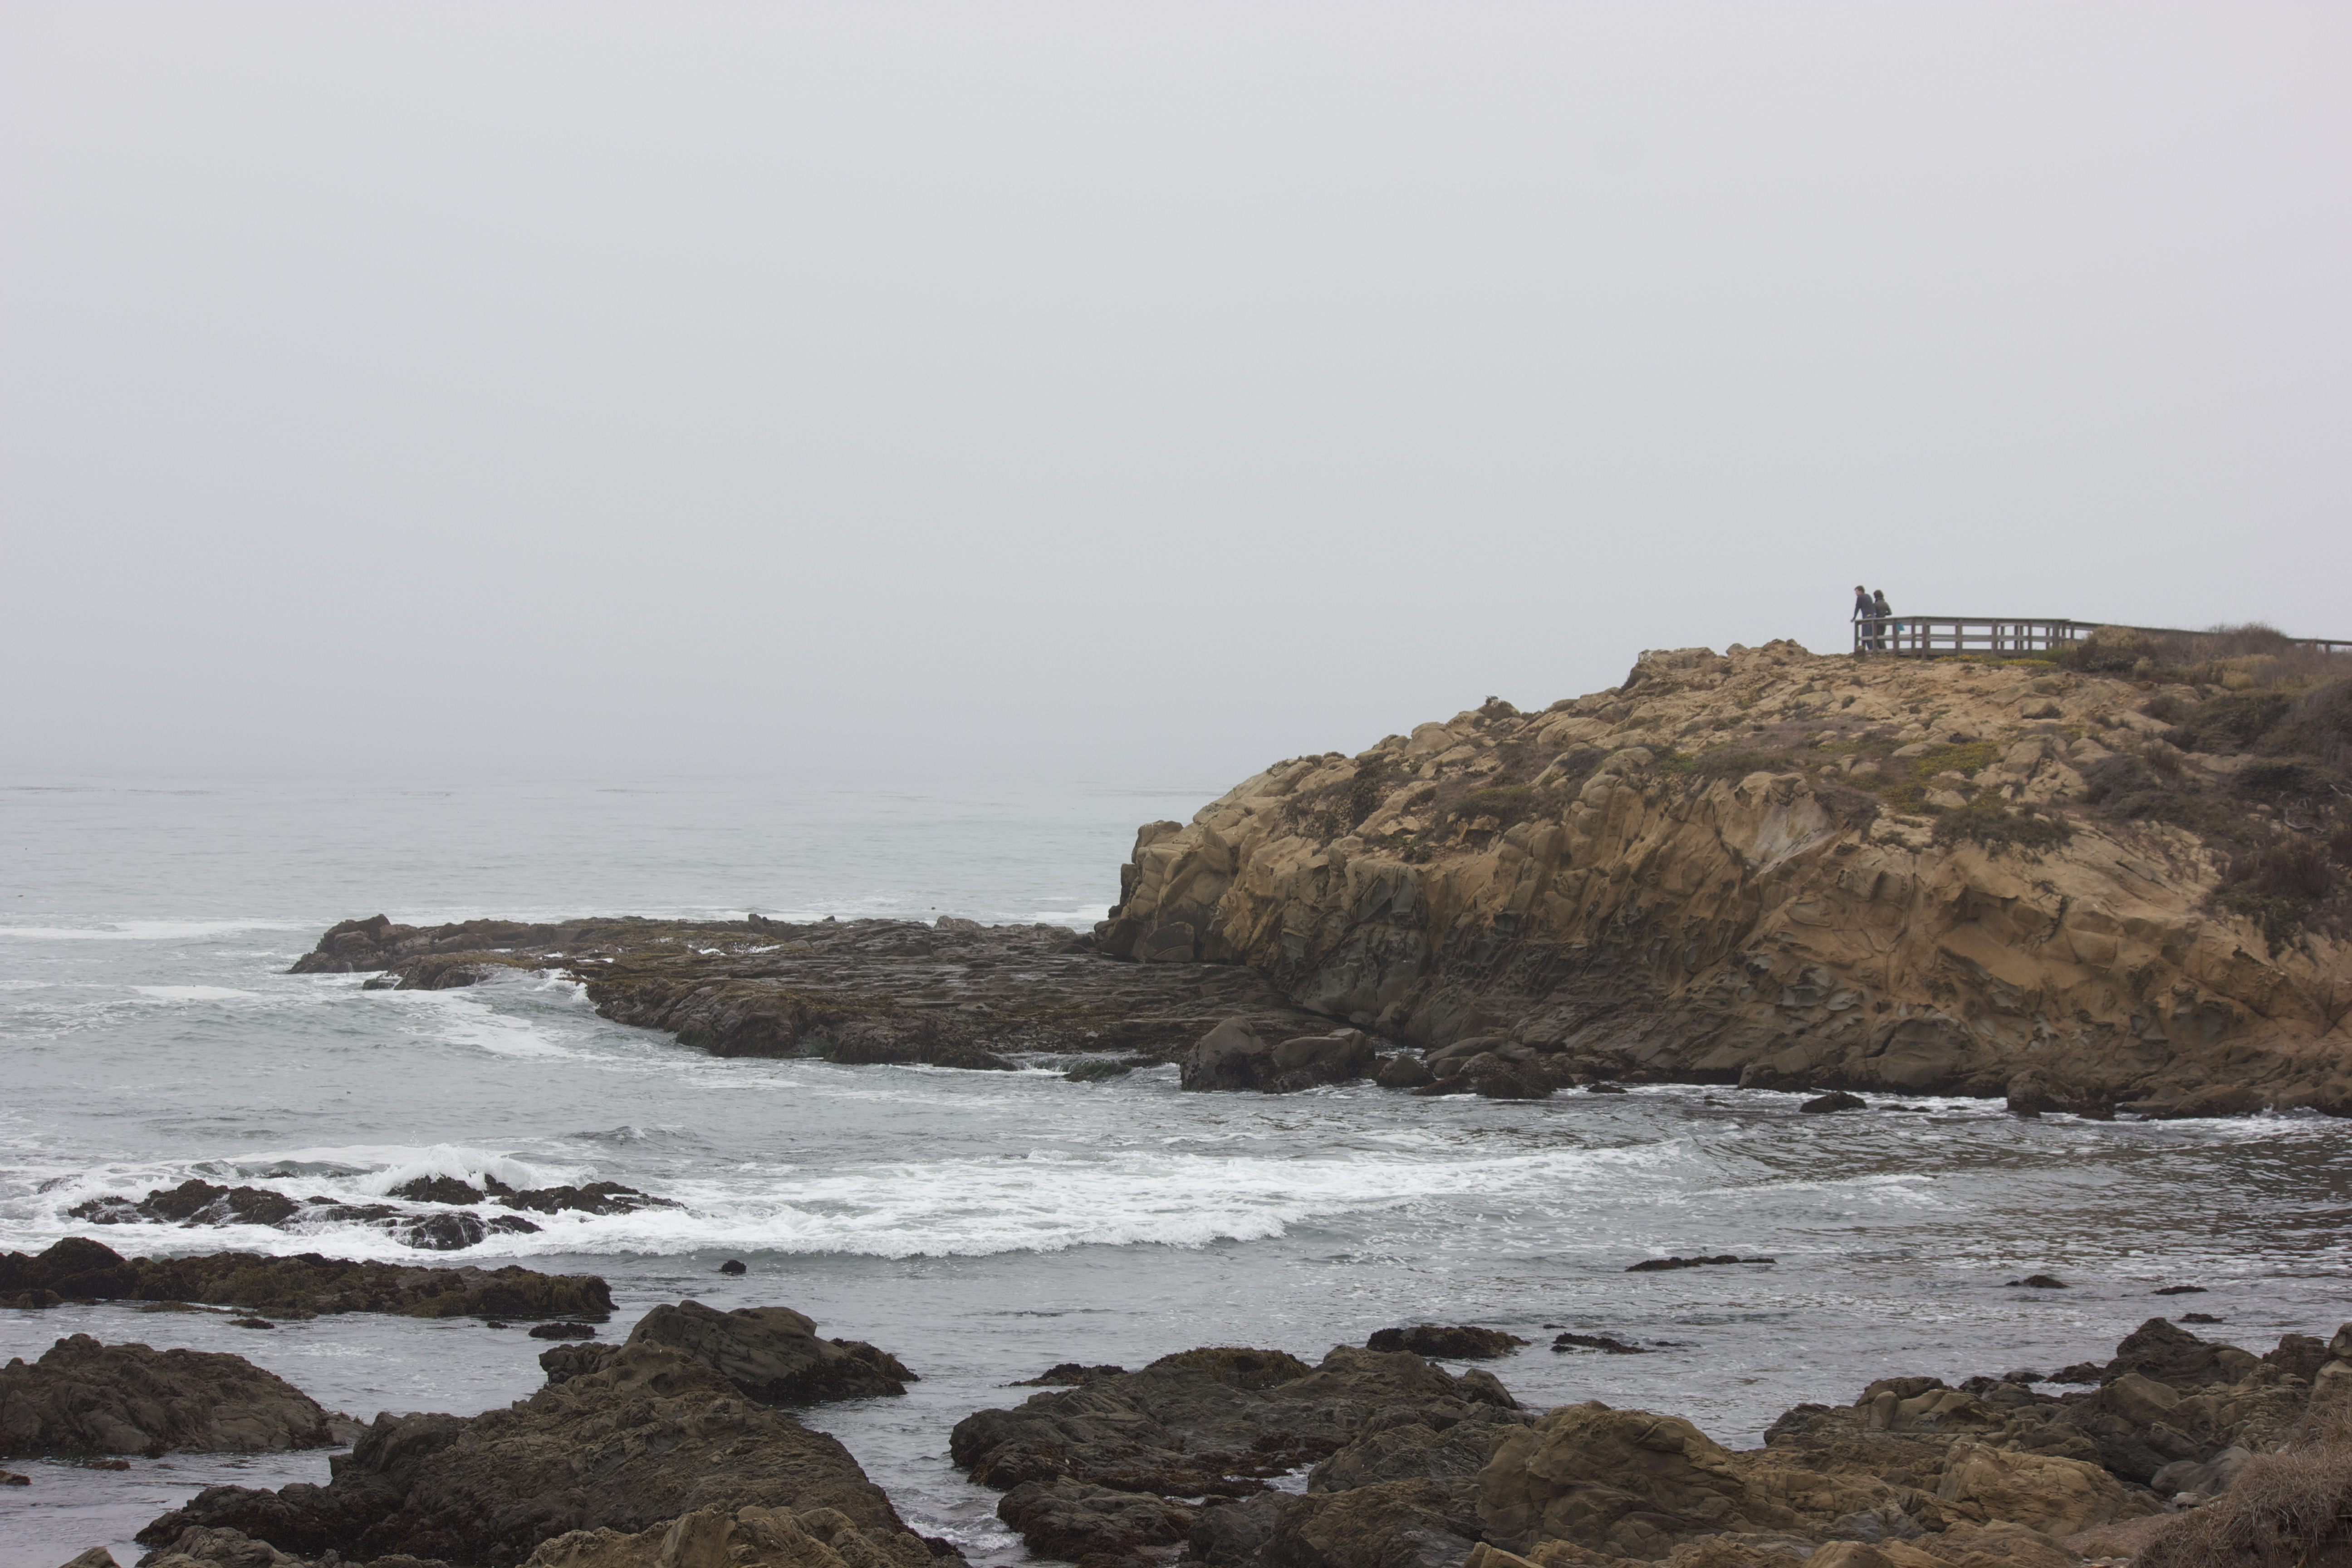 Two people standing in the distance on a rocky coastal outcropping, looking at the ocean.